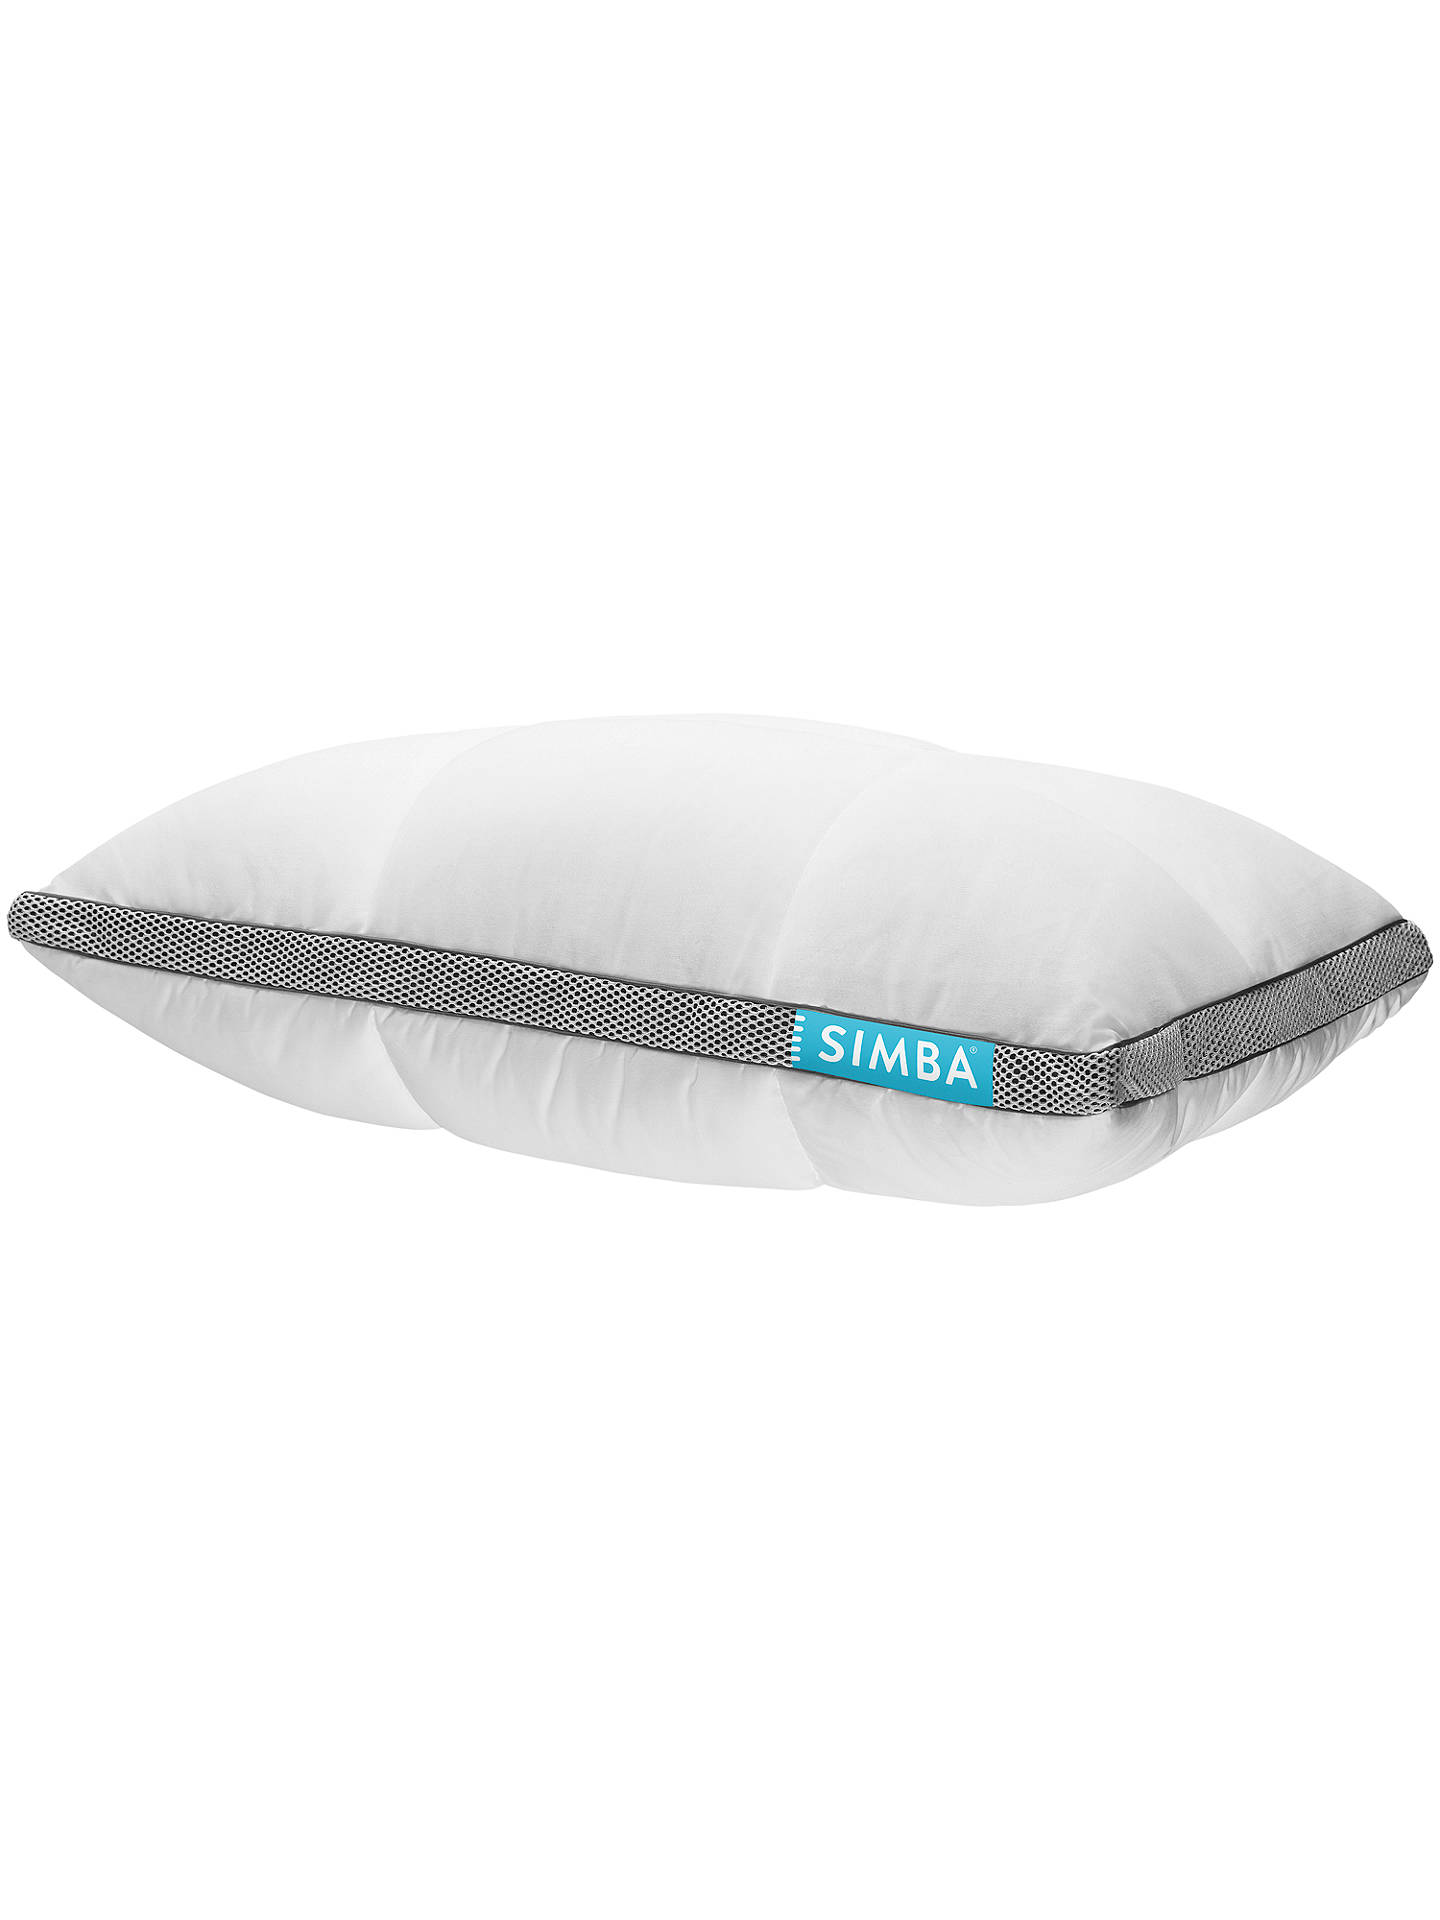 SIMBA Hybrid® Outlast Pillow